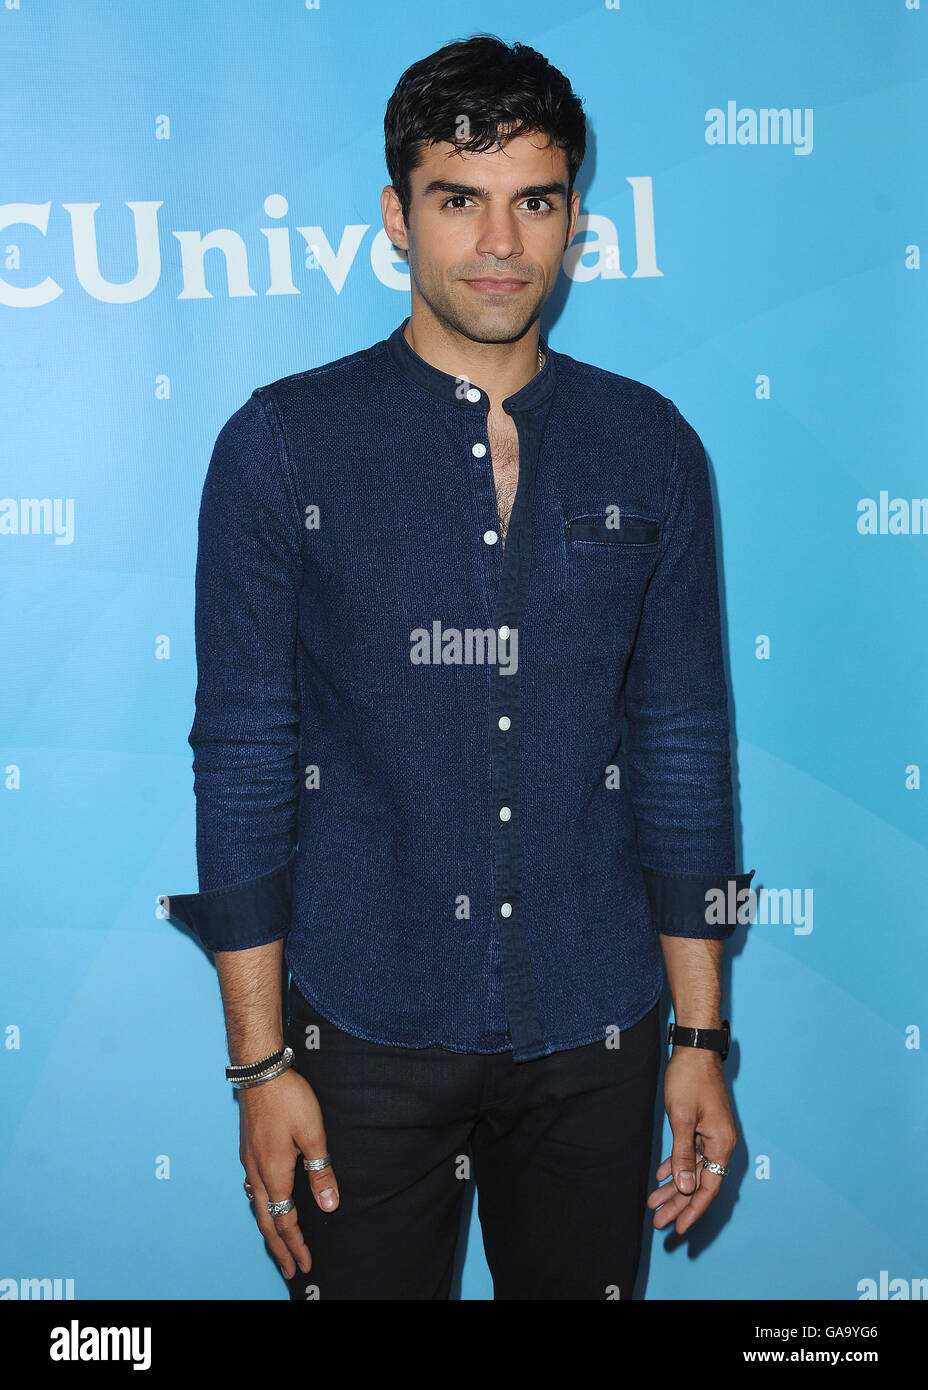 BEVERLY HILLS, CA - AUGUST 3:  Sean Teale at the NBCUniversal 2016 Summer Press Tour at the Beverly Hilton on August - Stock Image